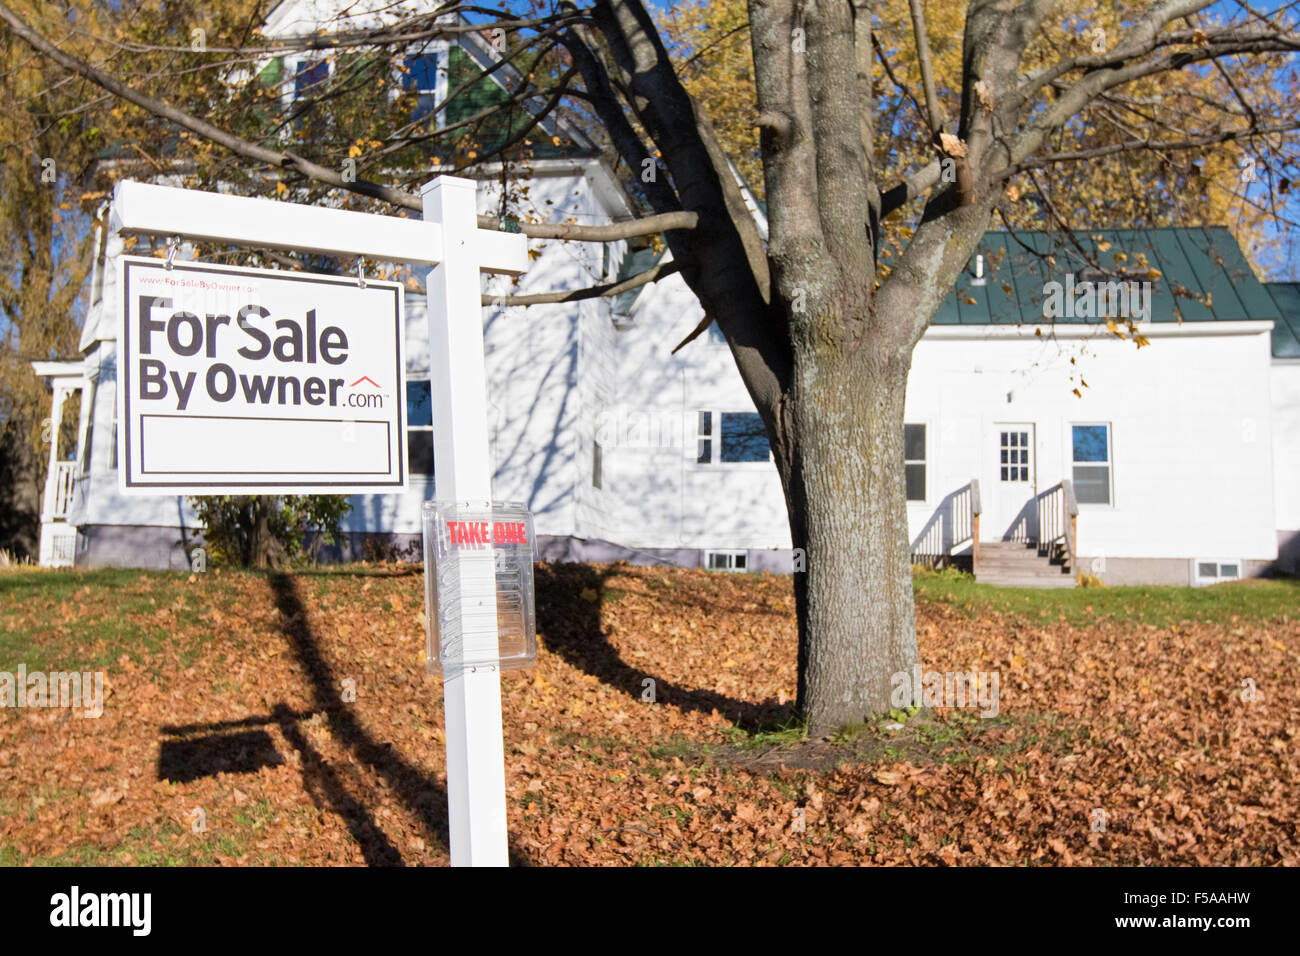 House for sale with real estate sign in front yard. For sale by owner. - Stock Image